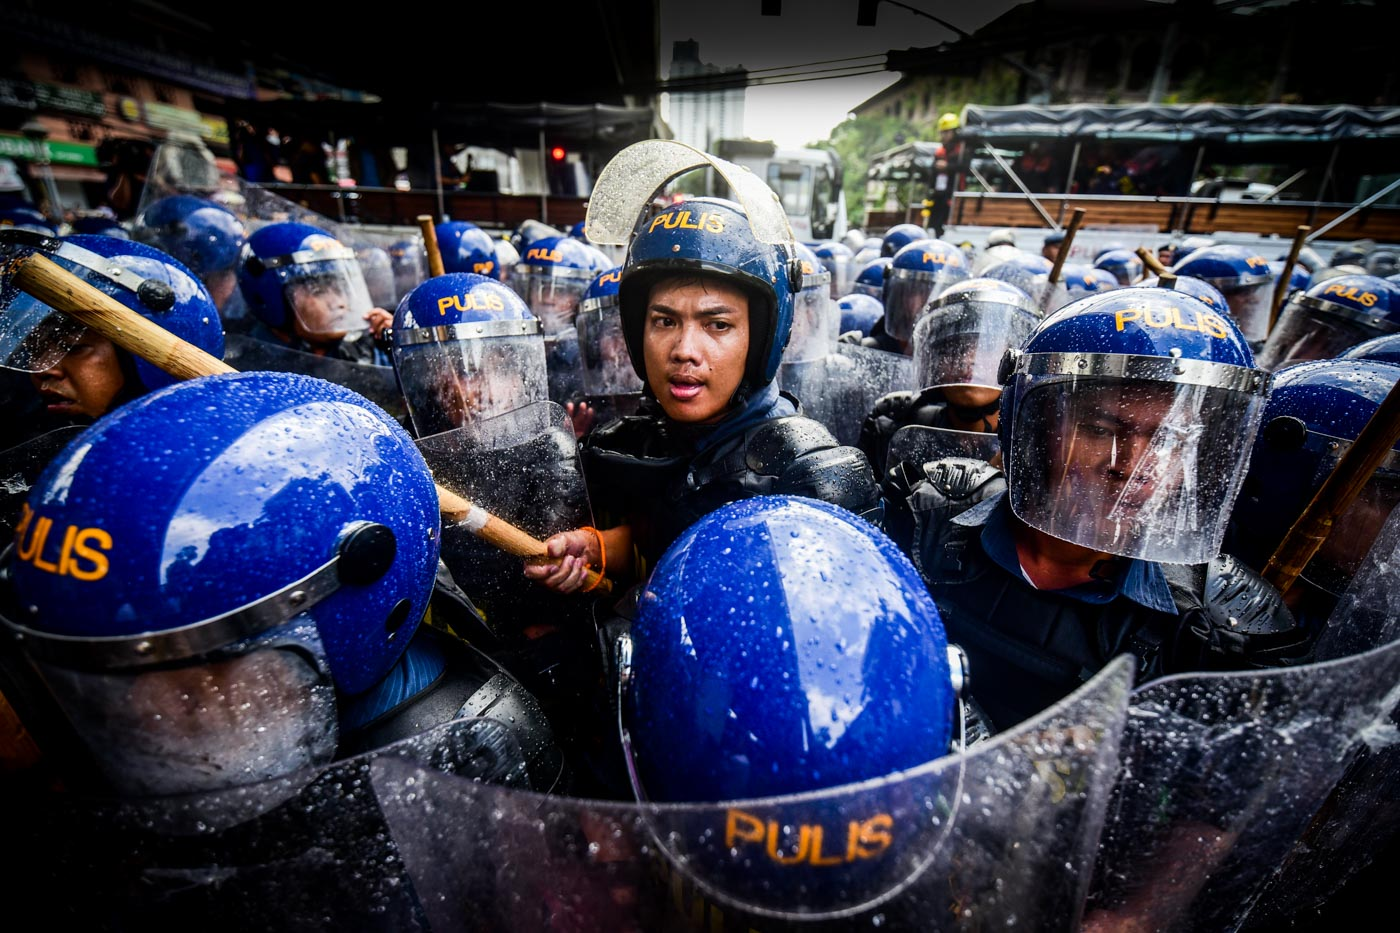 SECURITY. Around a hundred anti-riot police respond to the protest action along Taft Avenue on Monday, November 13.